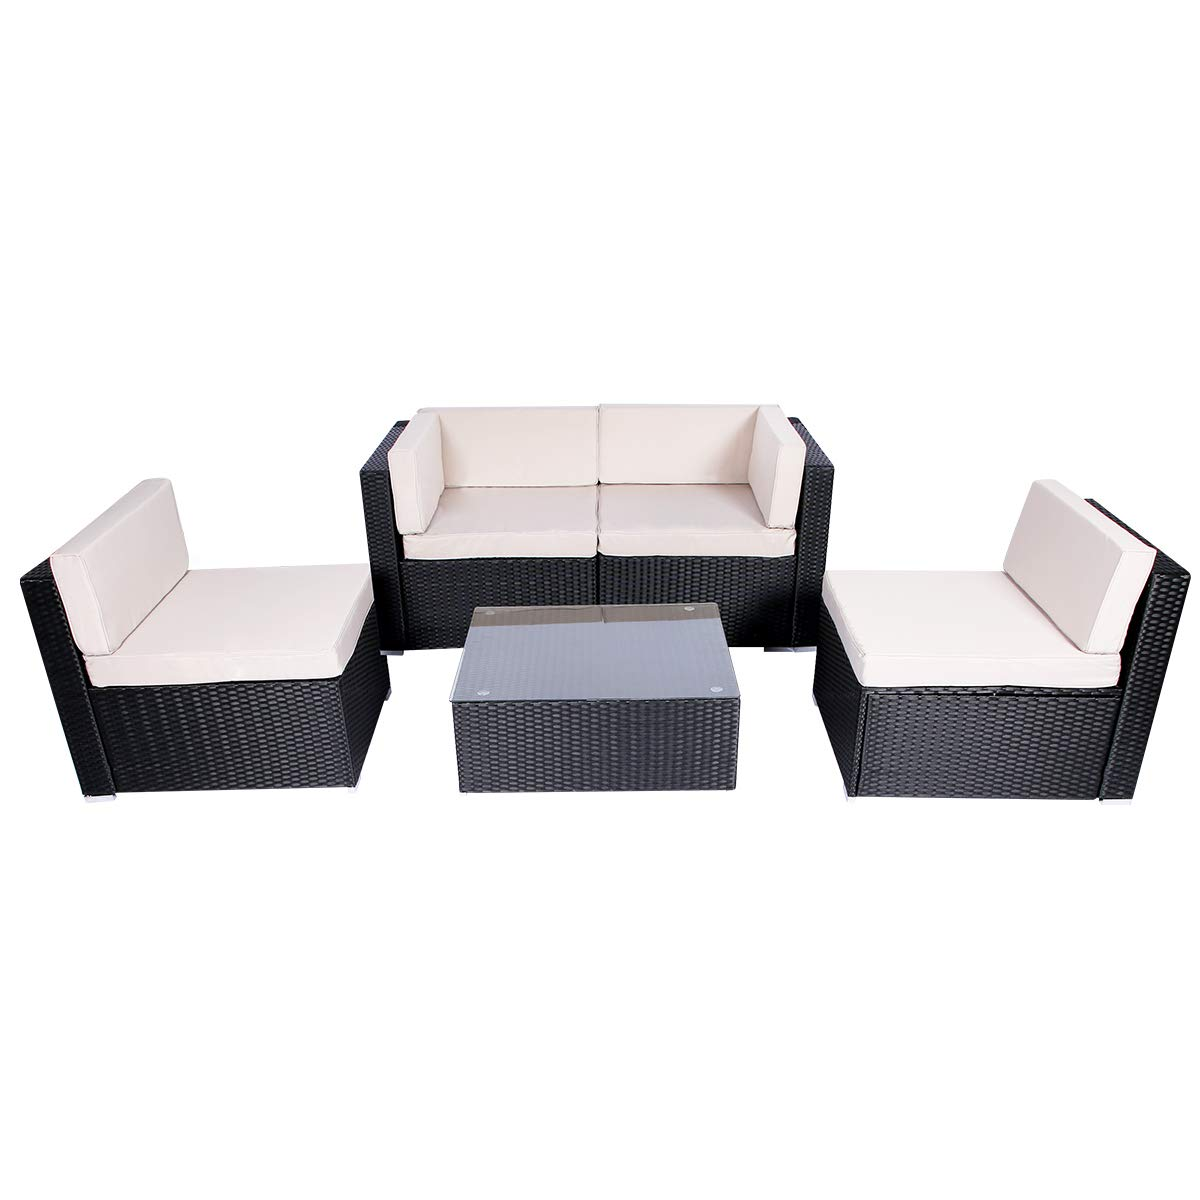 Esright 5 Pieces Patio PE Rattan Wicker Sofa Sectional Furniture (Black) by Esright